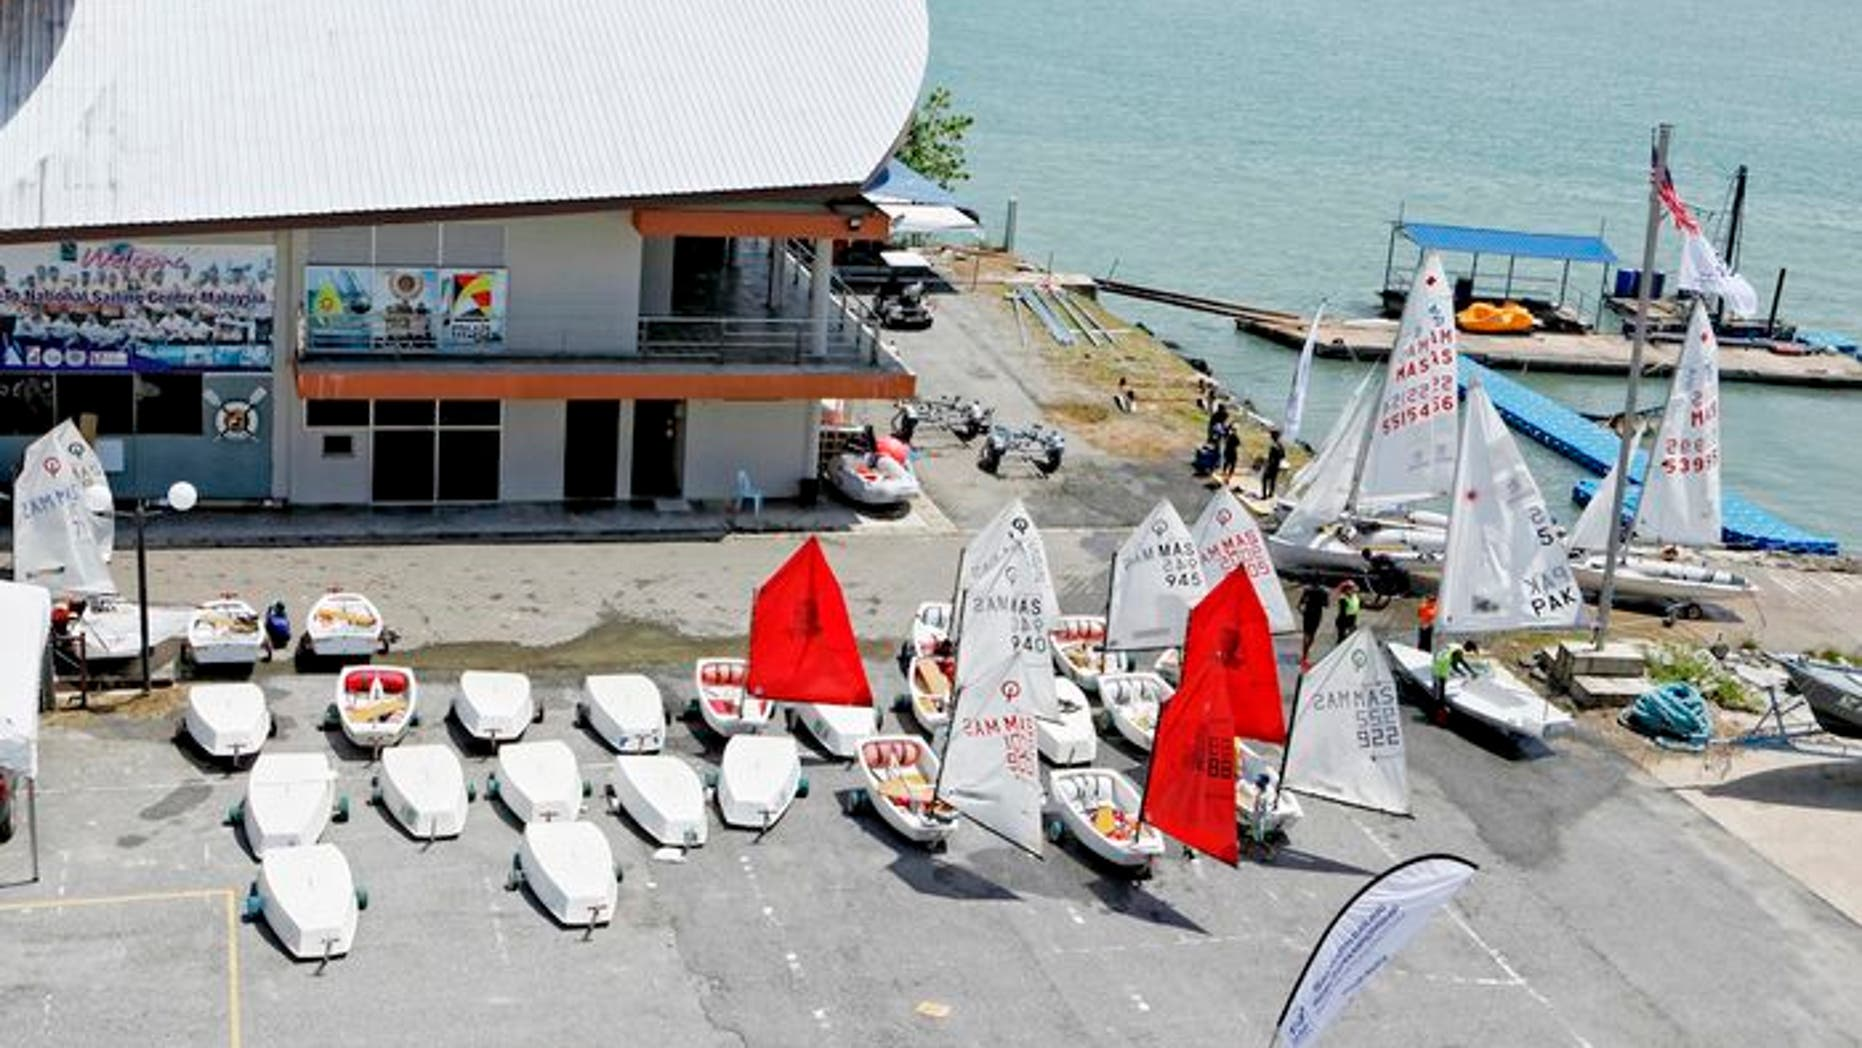 Competitors' boats dot the landscape at Langkawi, Malaysia, site of the ISAF Youth Sailing World Championship. (Credit: Christophe Launay/World Sailing)